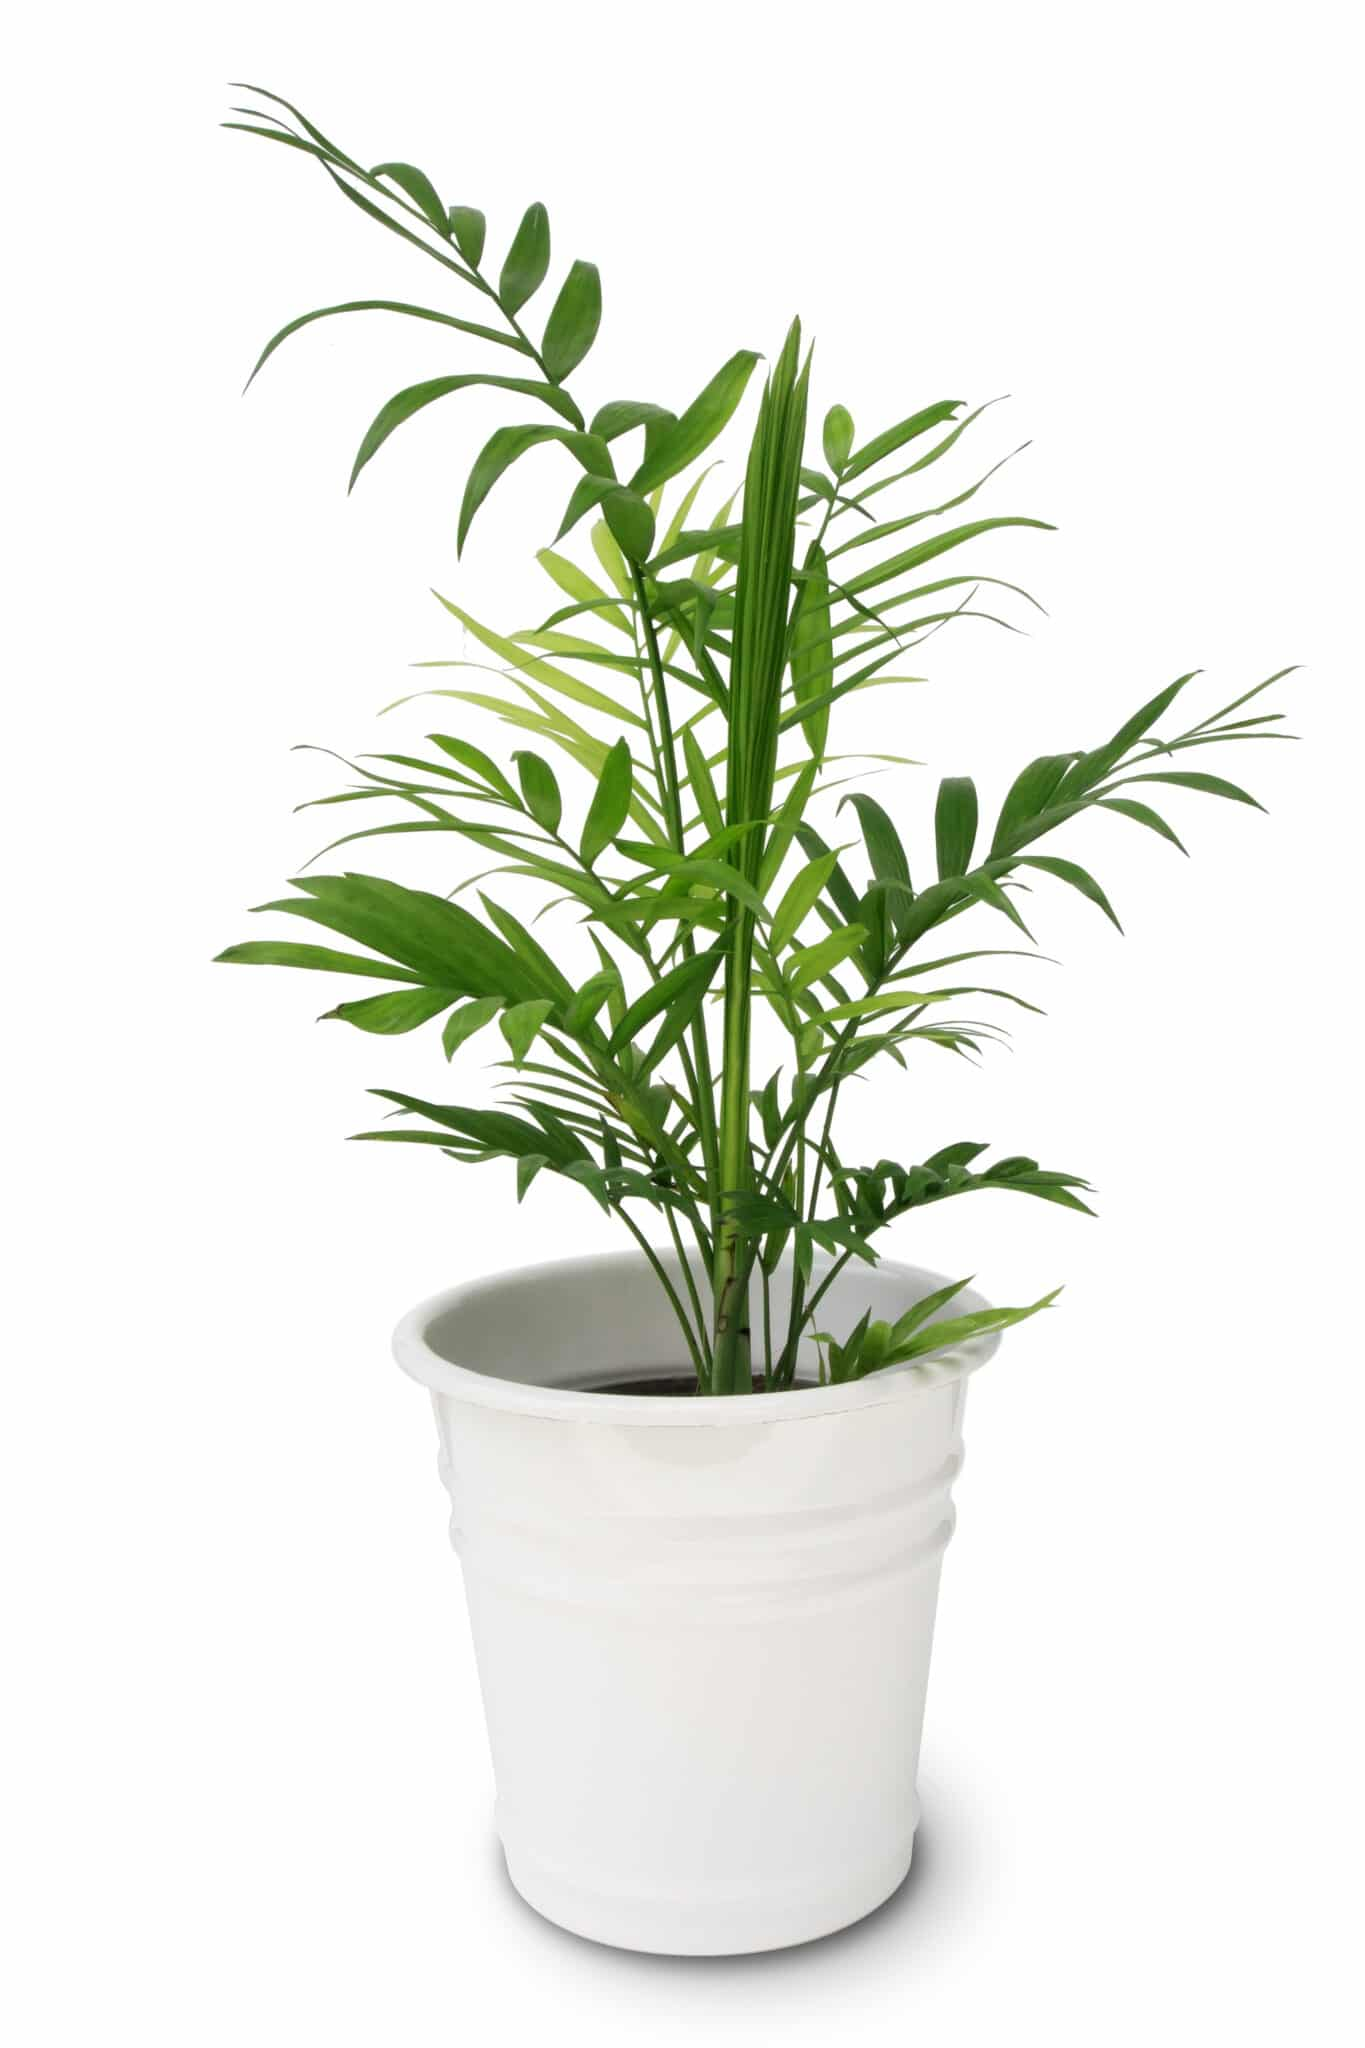 Bamboo palm in a pot.